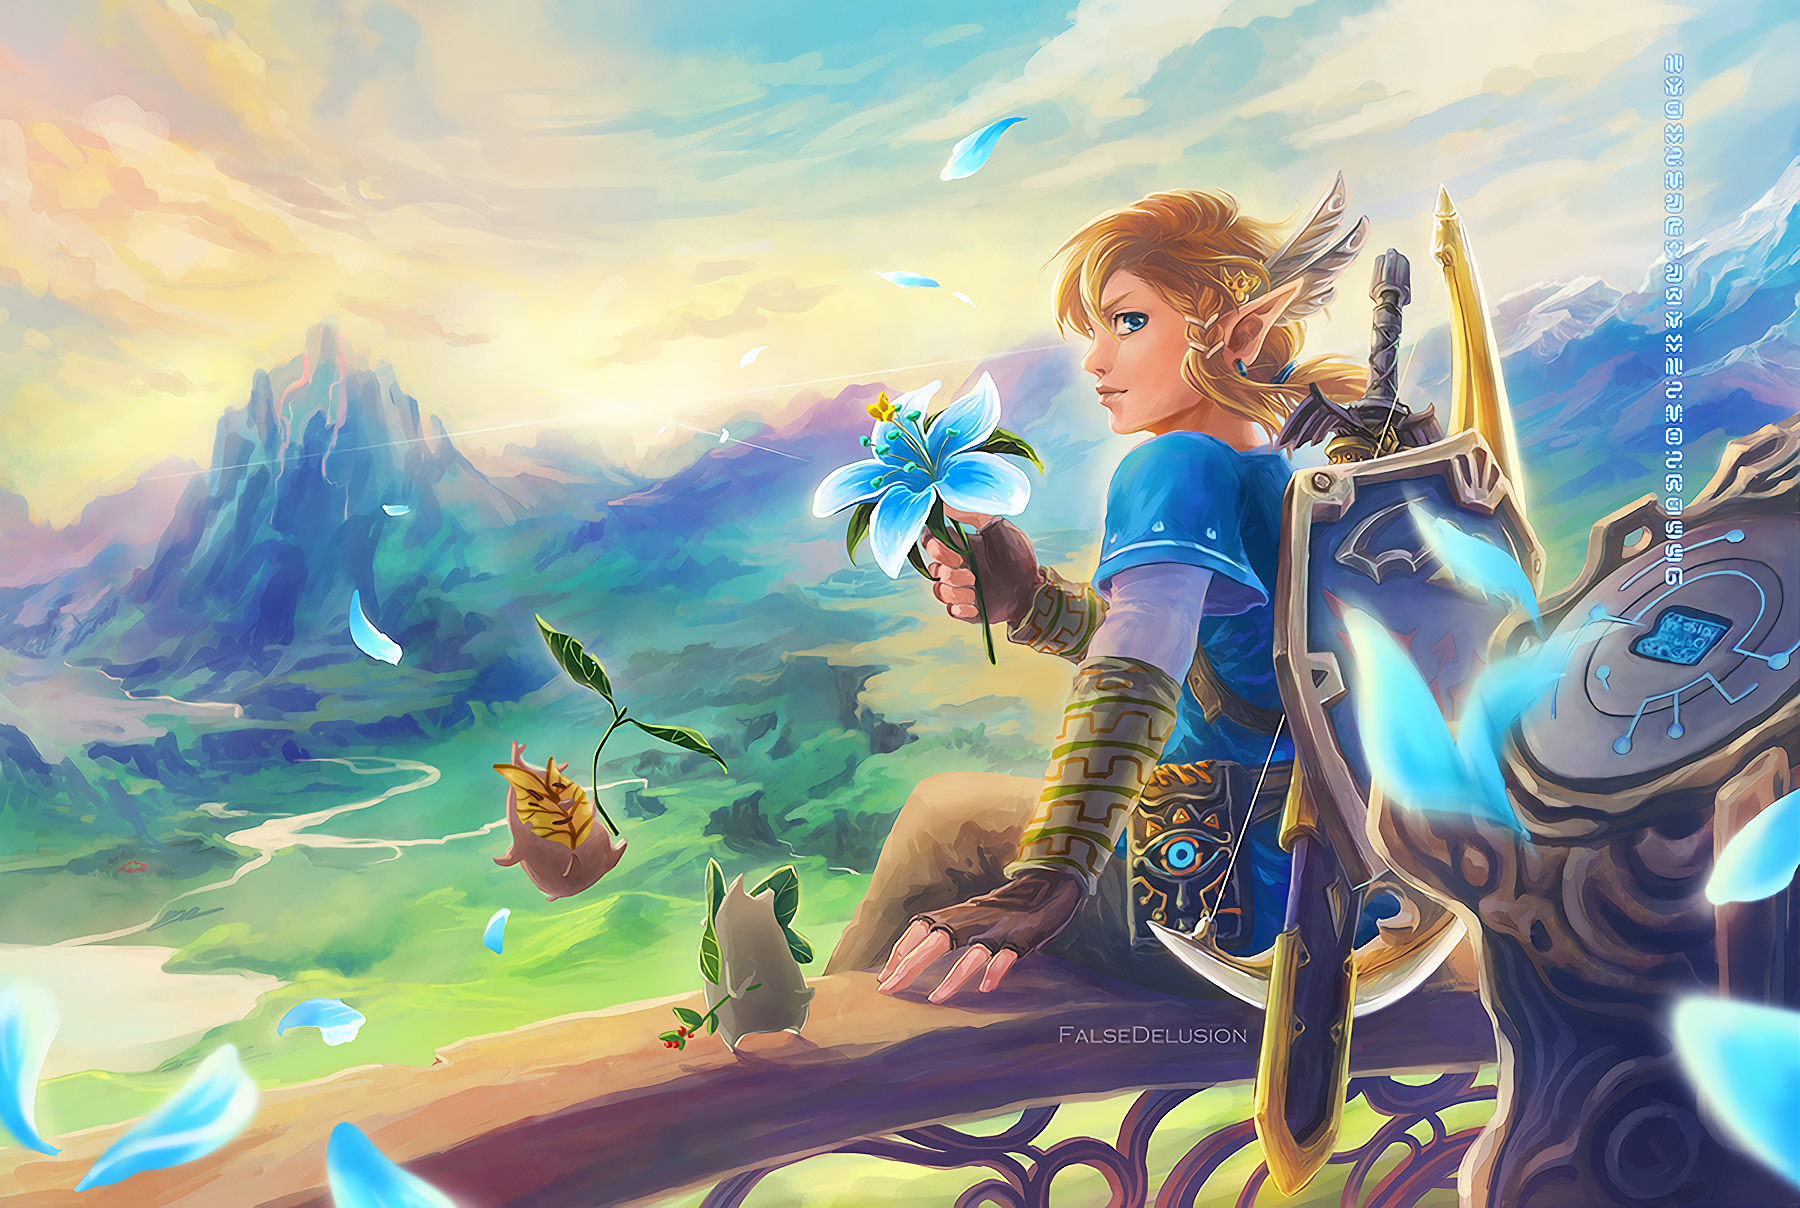 Free Download The Legend Of Zelda Breath Of The Wild Wallpaper And